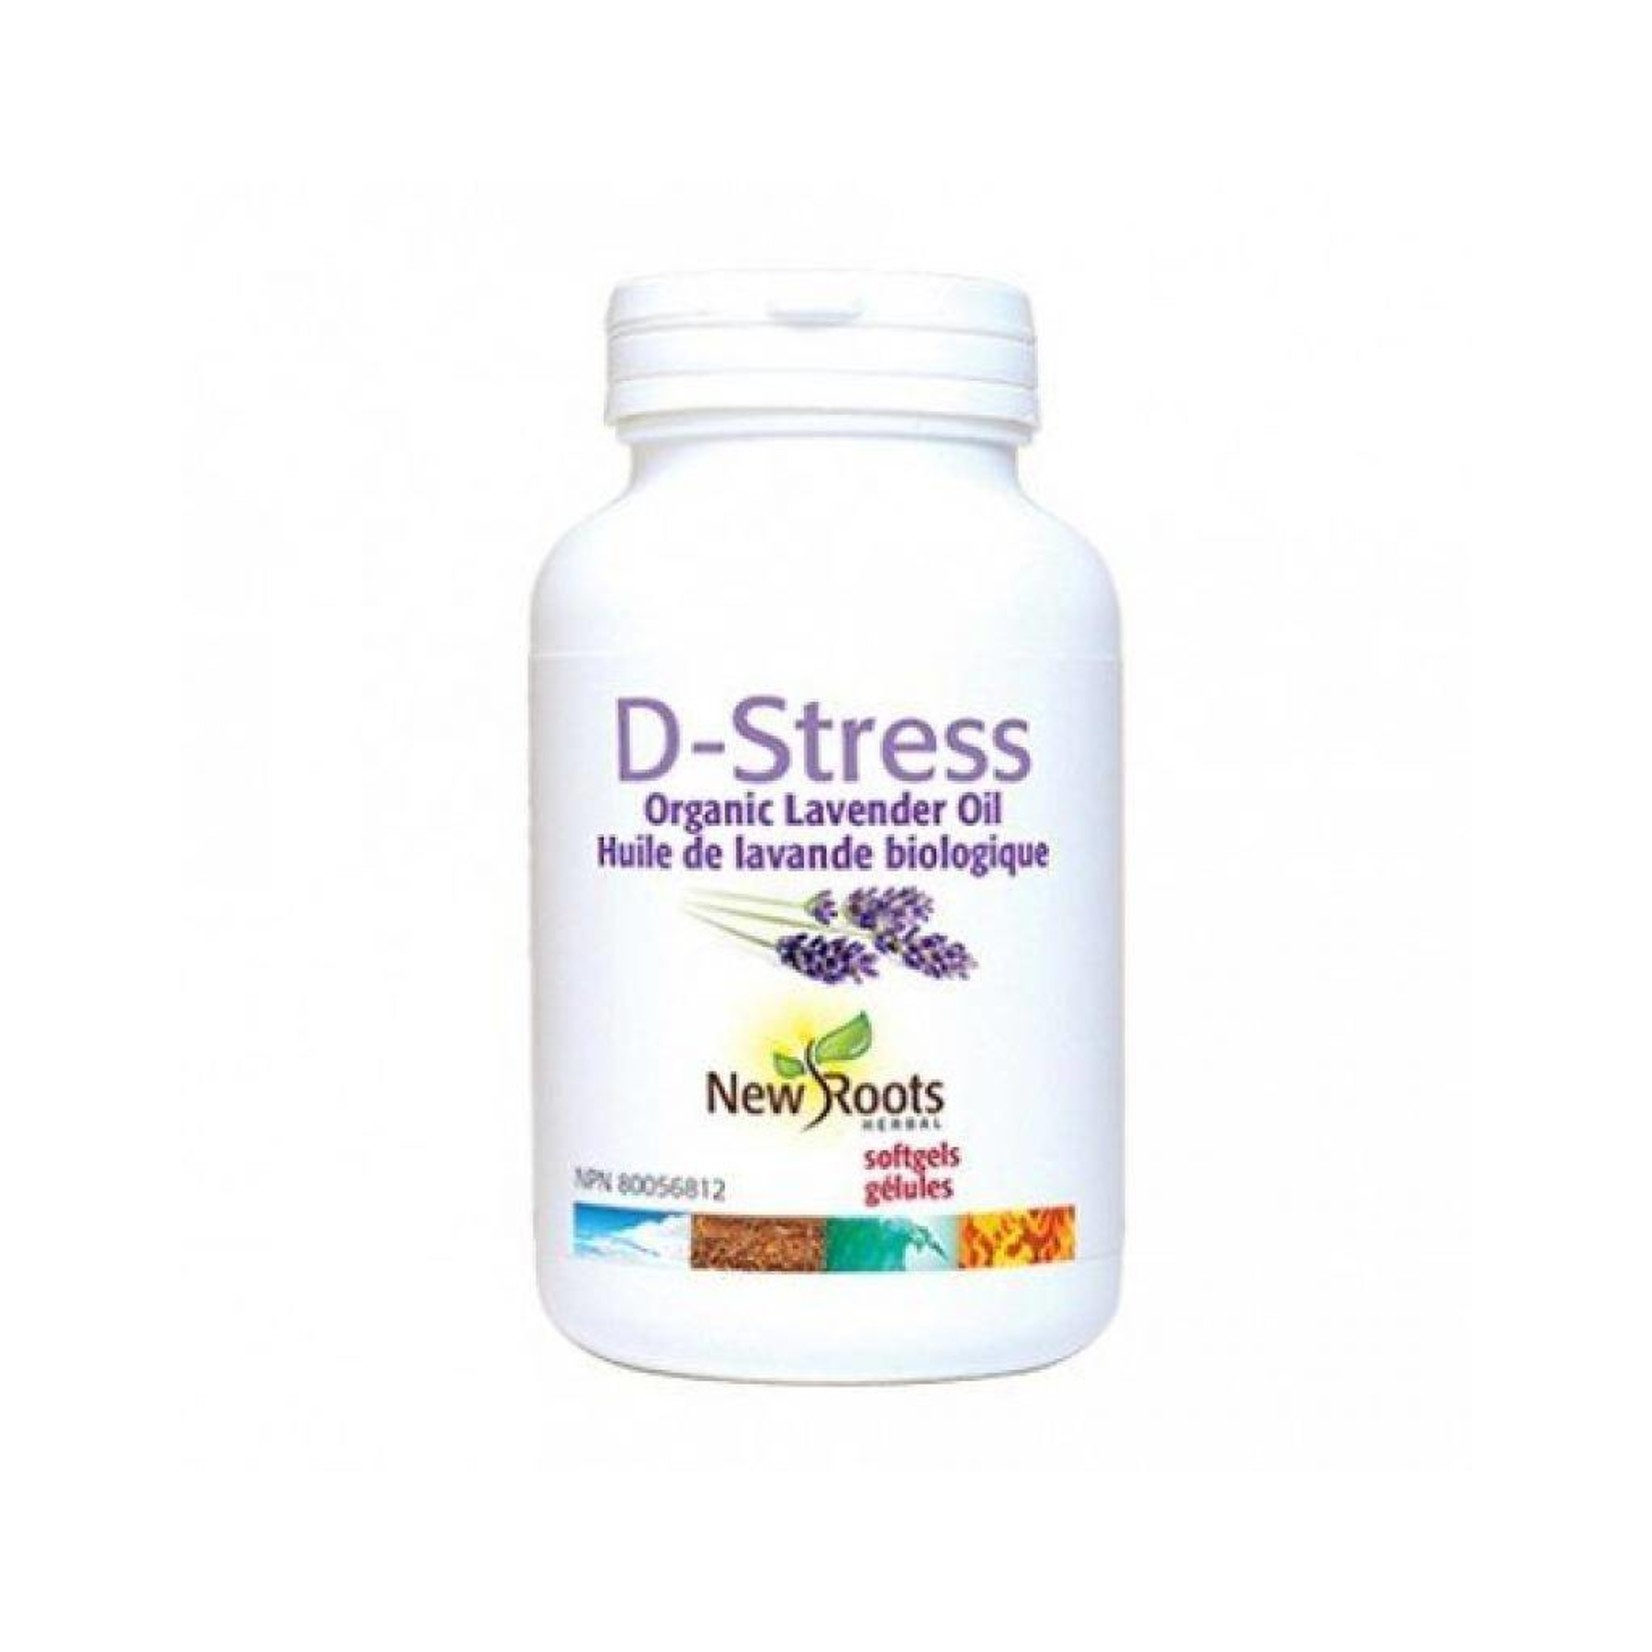 New Roots New Roots D-Stress Organic Lavender Oil 30 softgels